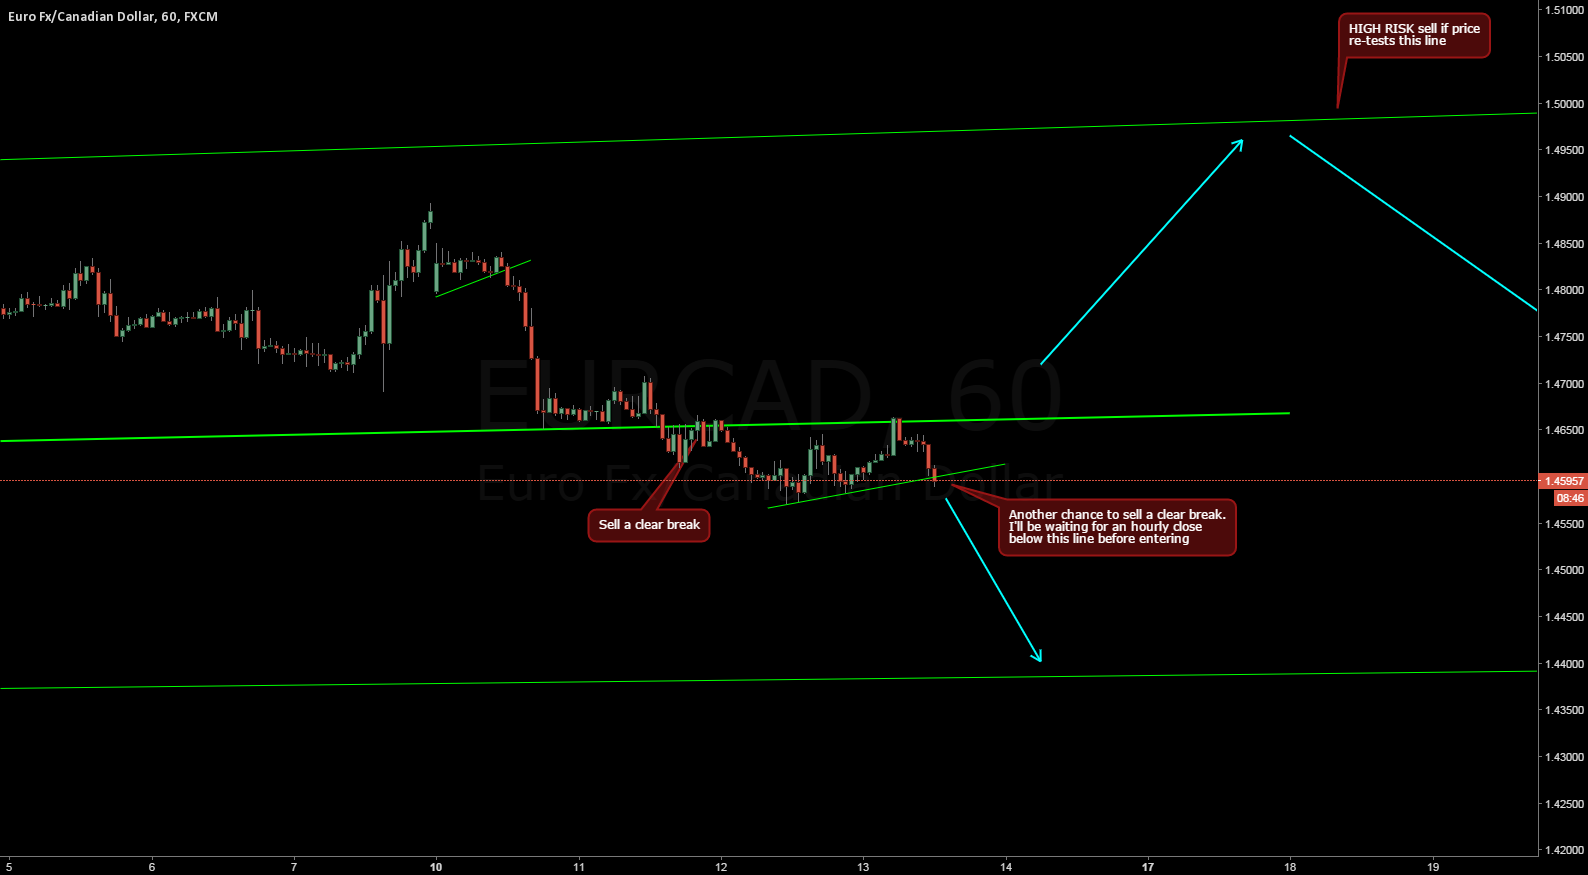 Another potential entry forming